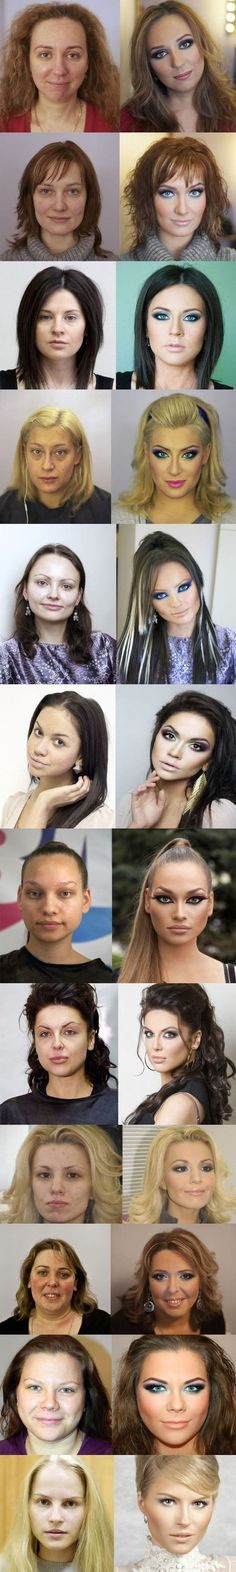 Before & after make-up - funny pictures #funnypictures